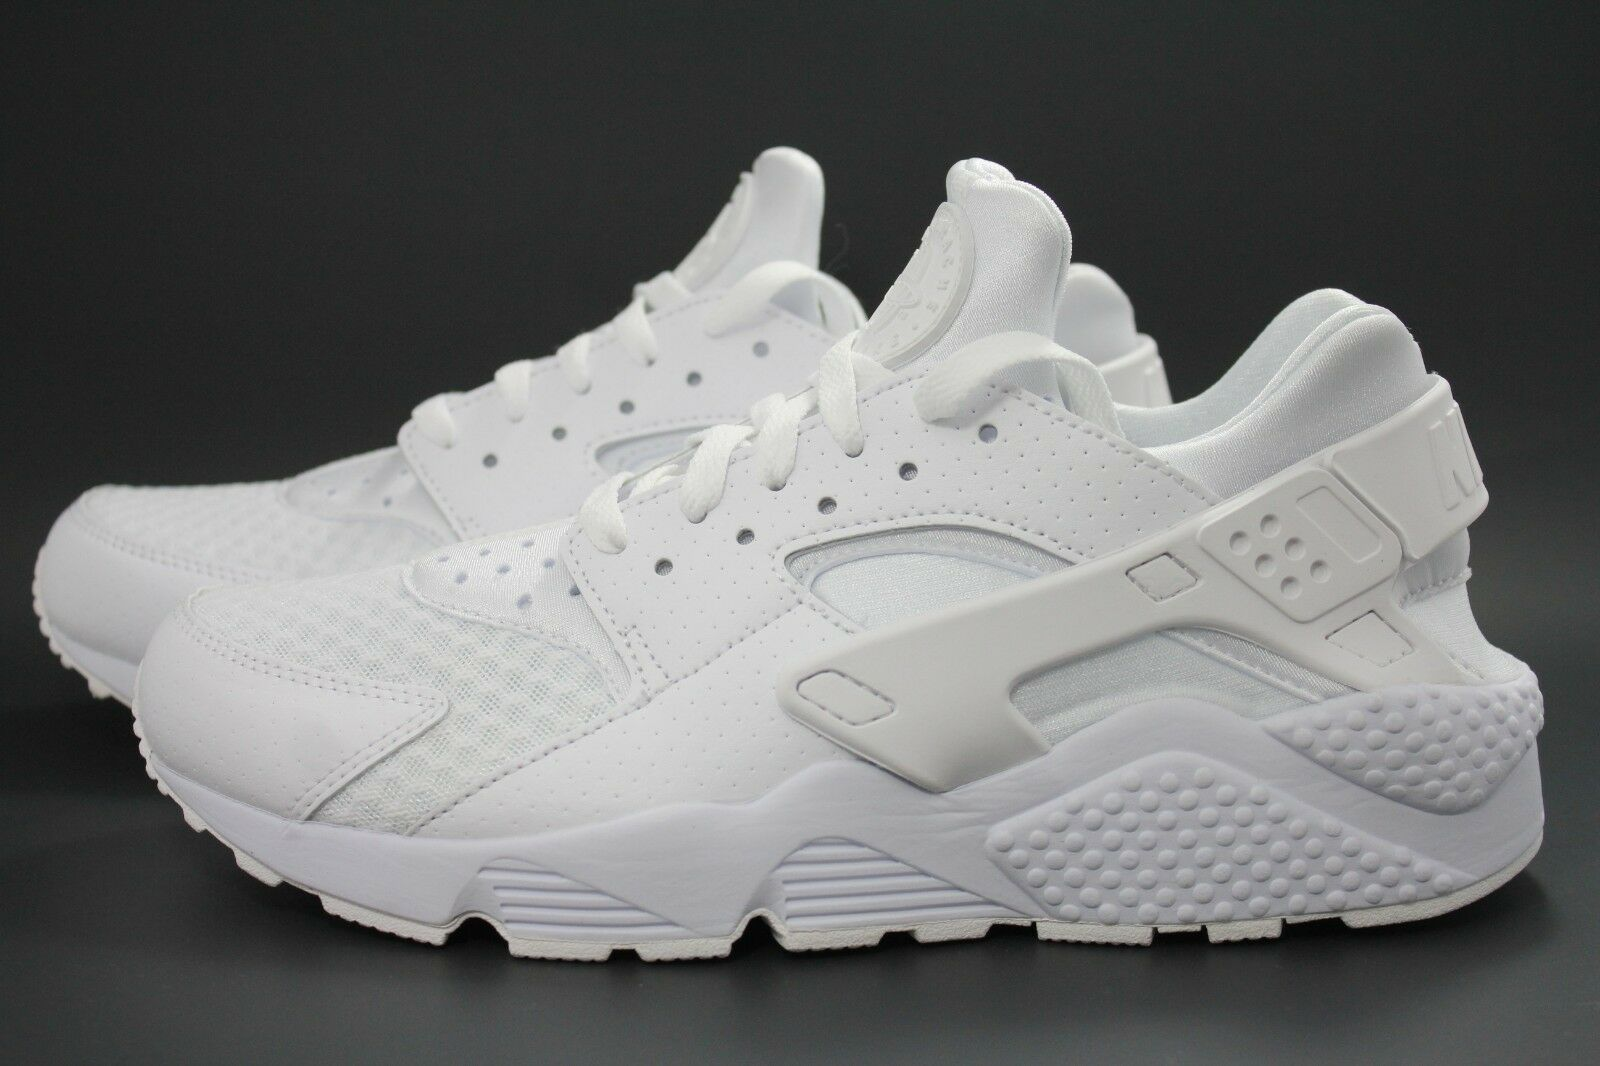 MEN'S NIKE AIR HUARACHE WHITE-PURE PLATINUM 318429-111